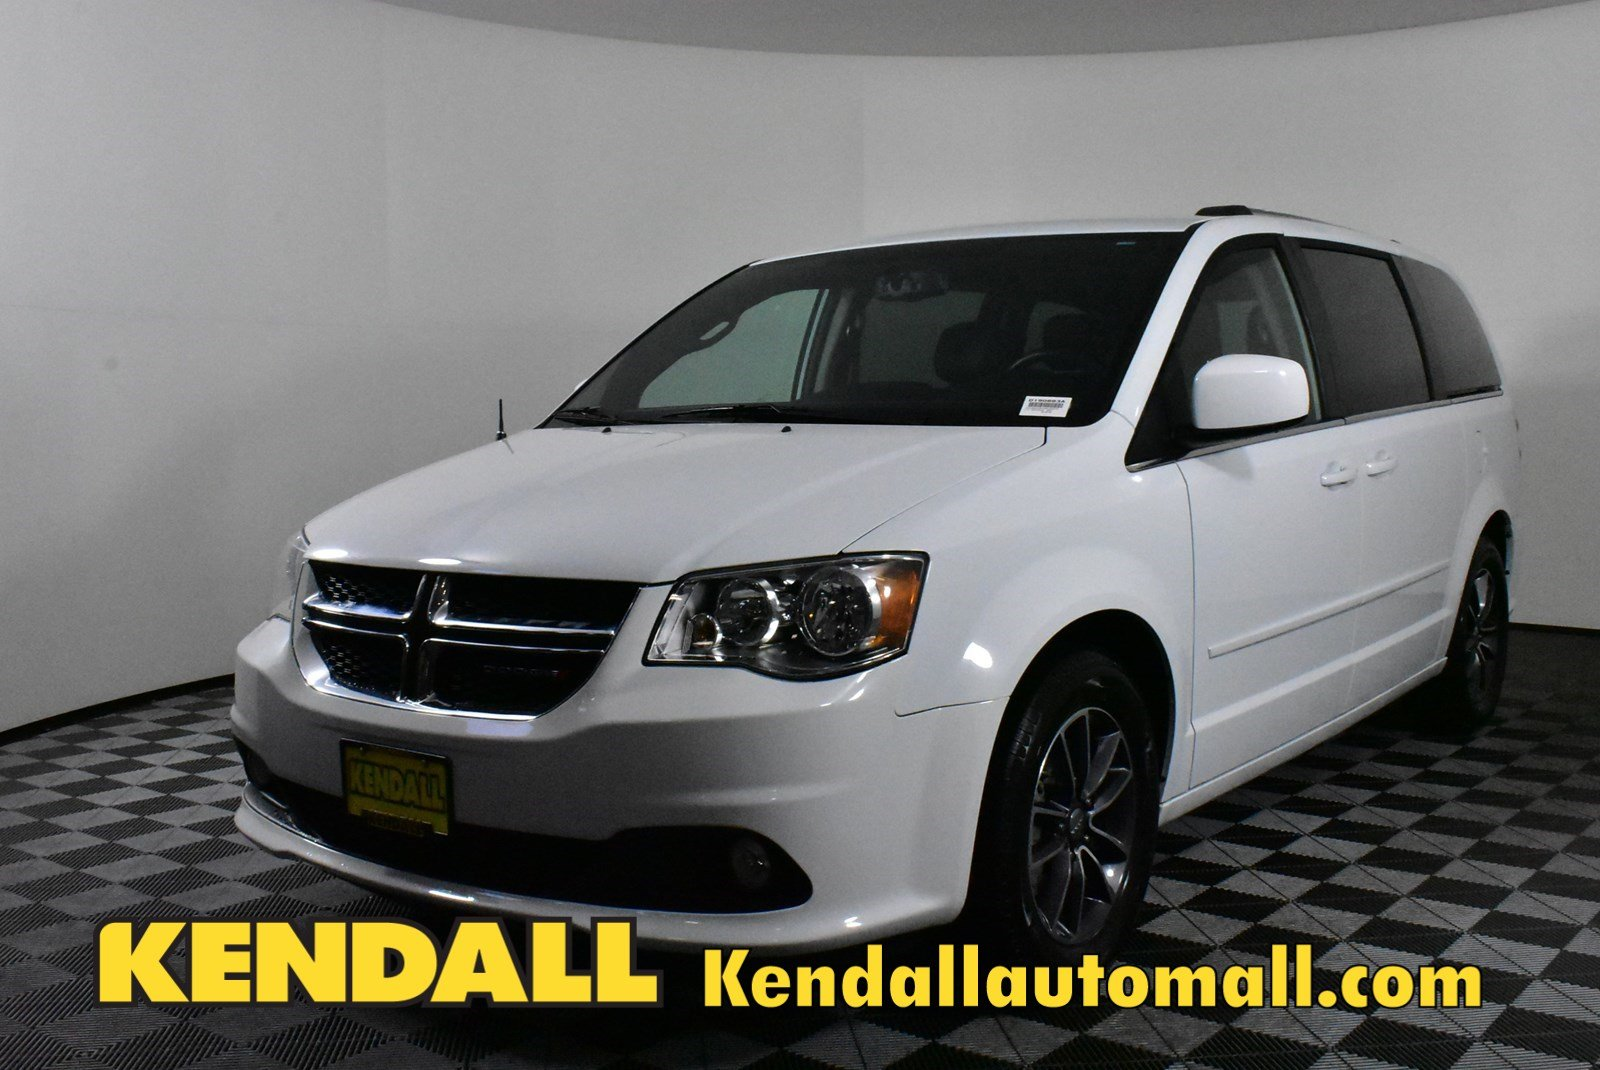 Pre Owned 2017 Dodge Grand Caravan Sxt In Nampa D190663a Kendall At The Idaho Center Auto Mall